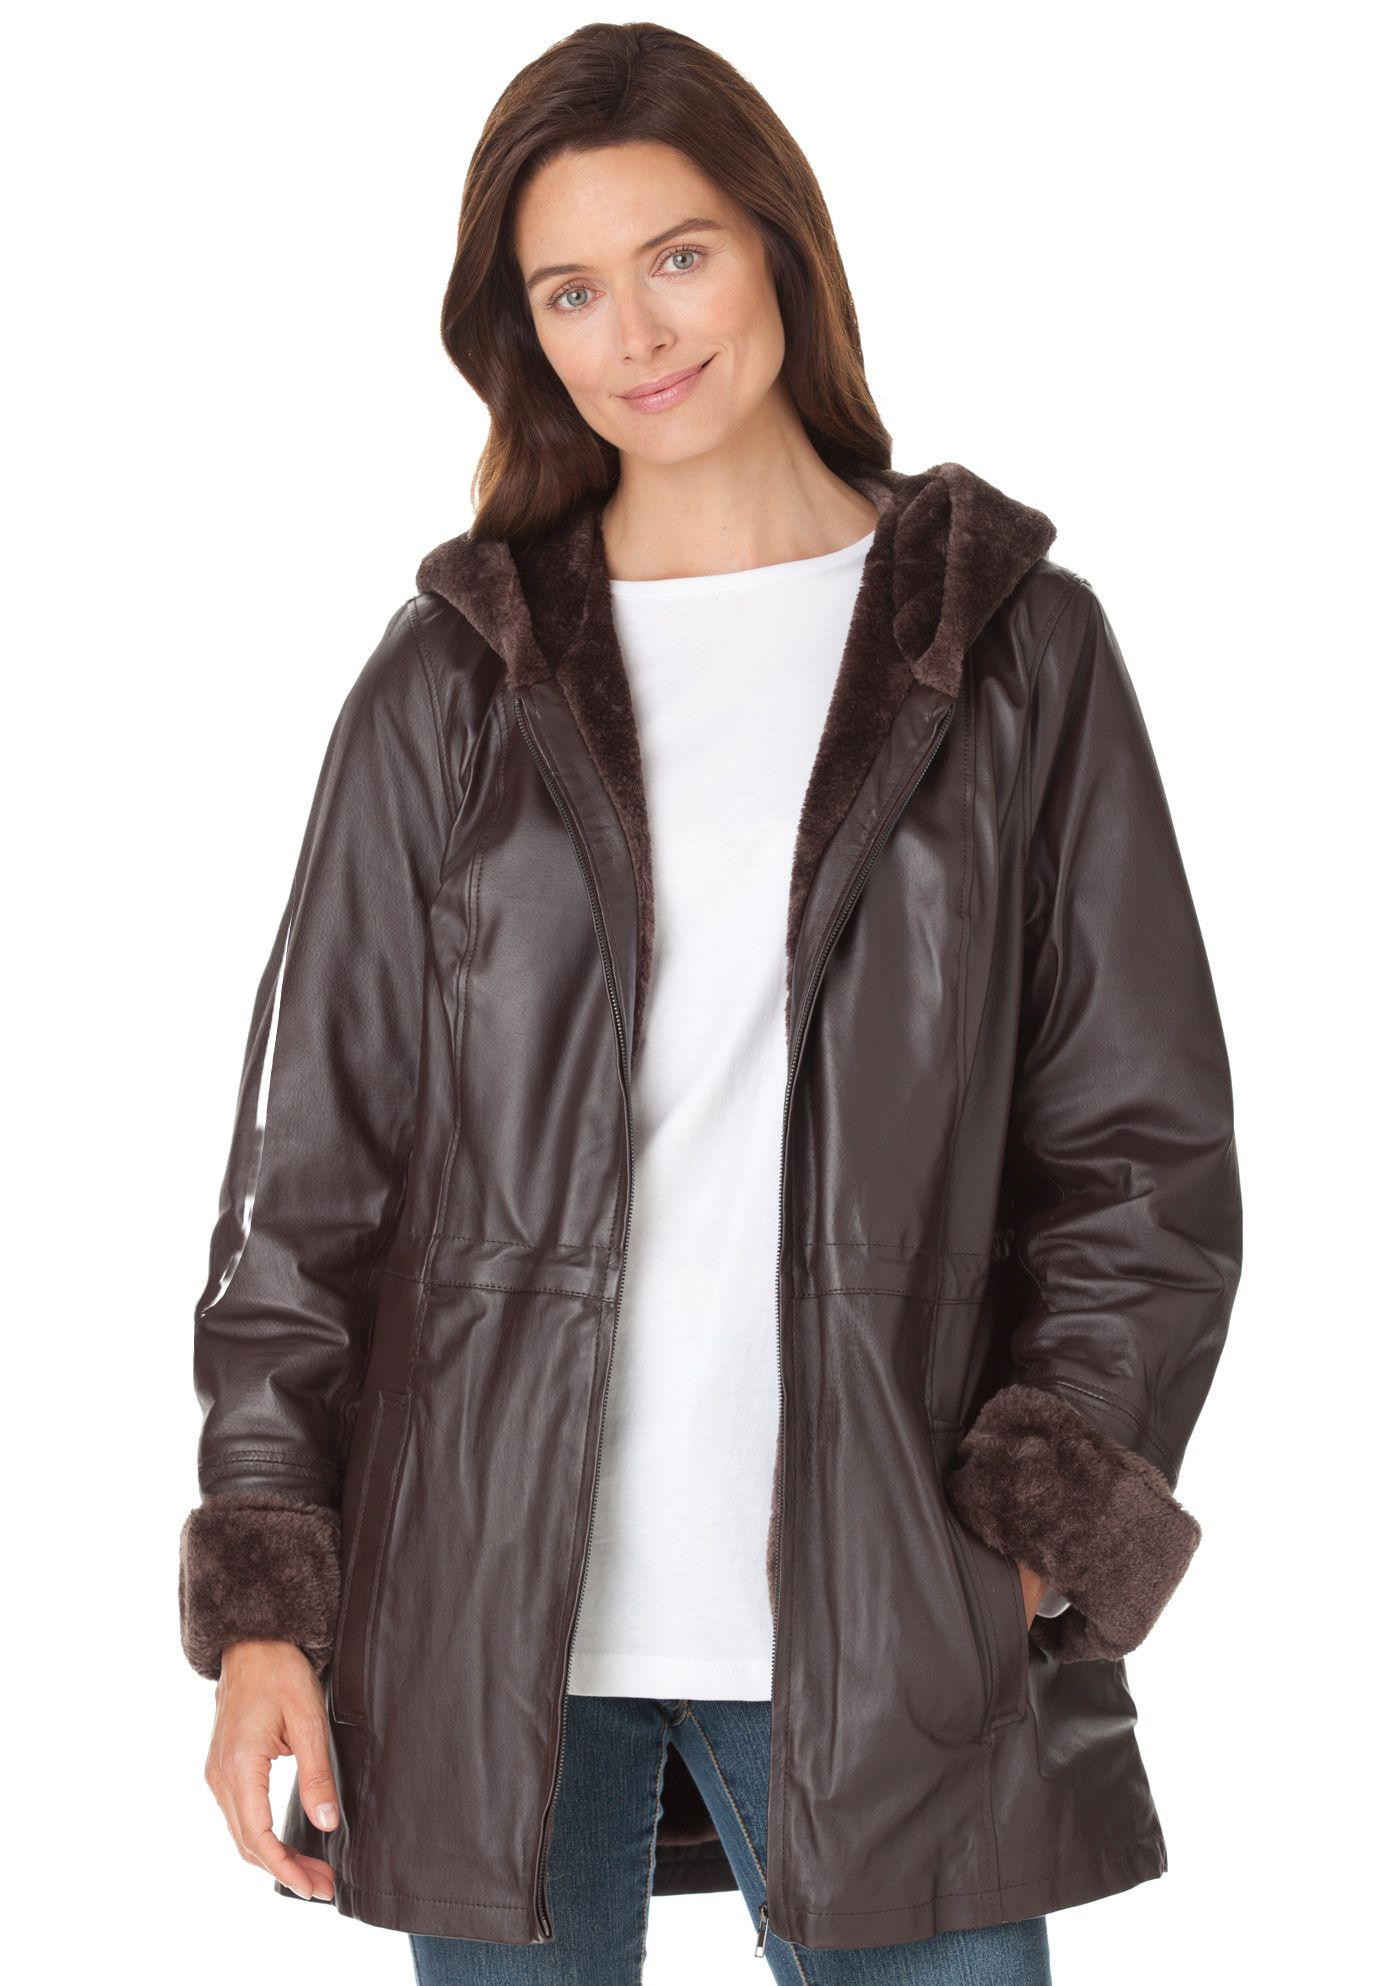 Our plus size leather hooded anorak jacket is perfect for